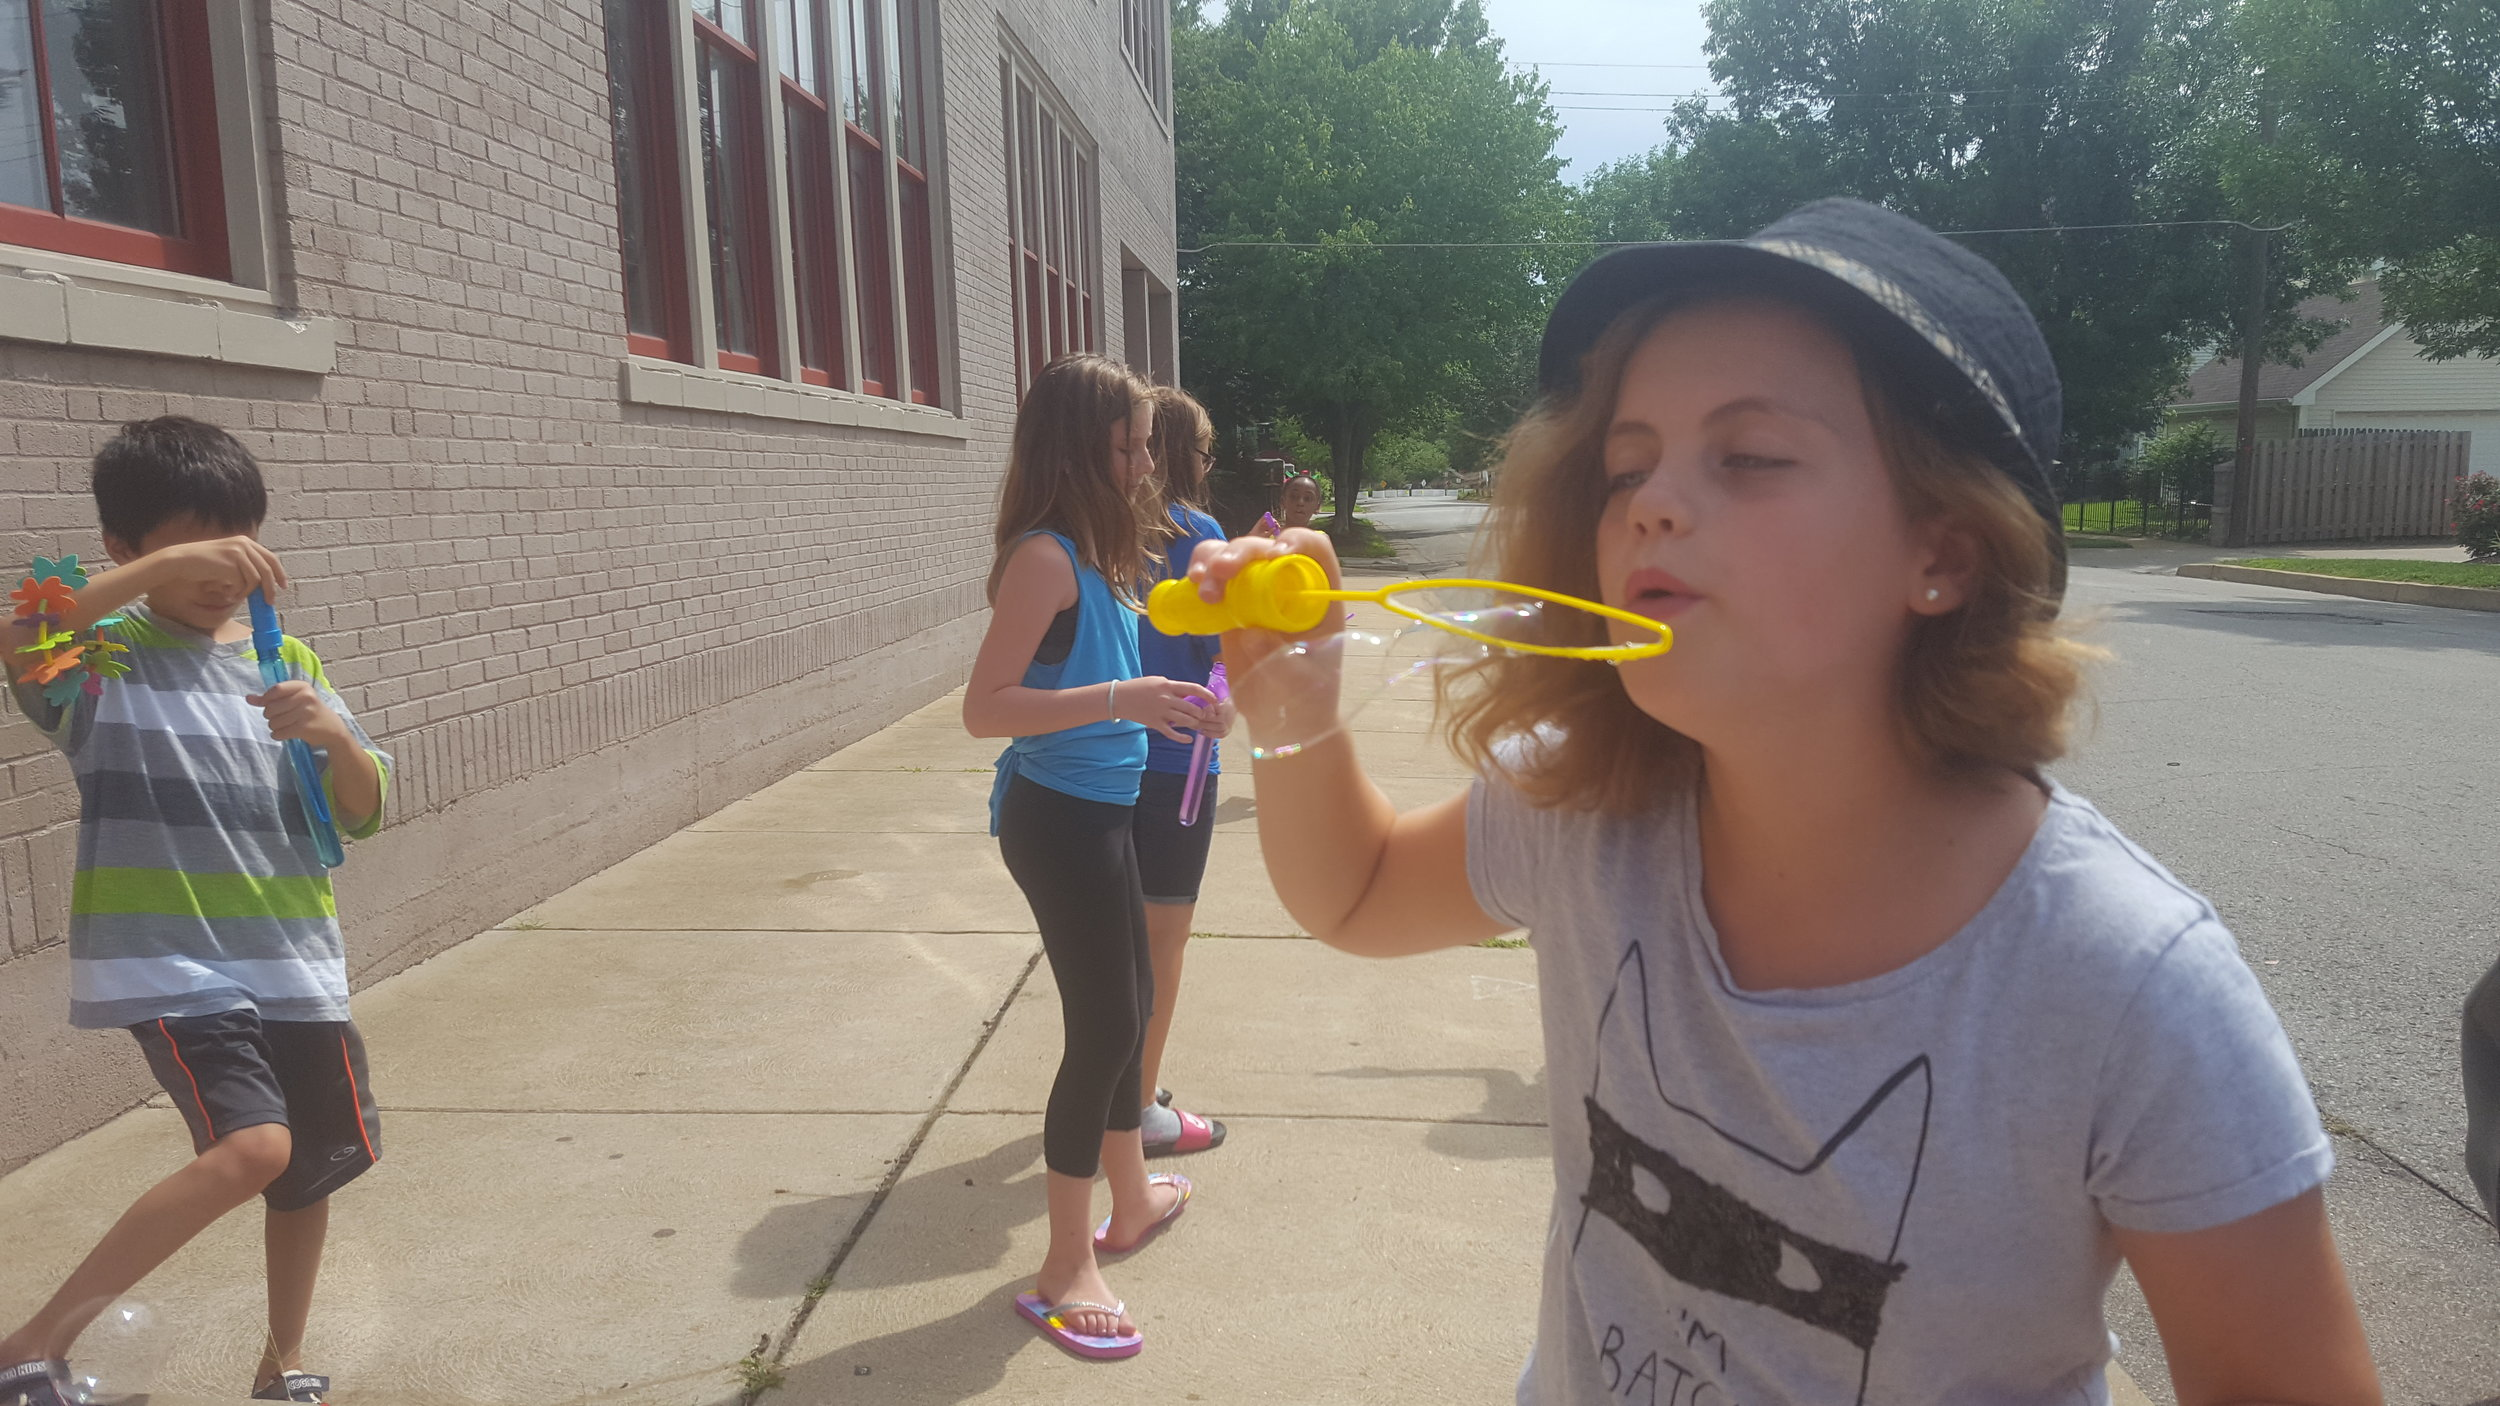 Students play with bubbles on a break between classes.